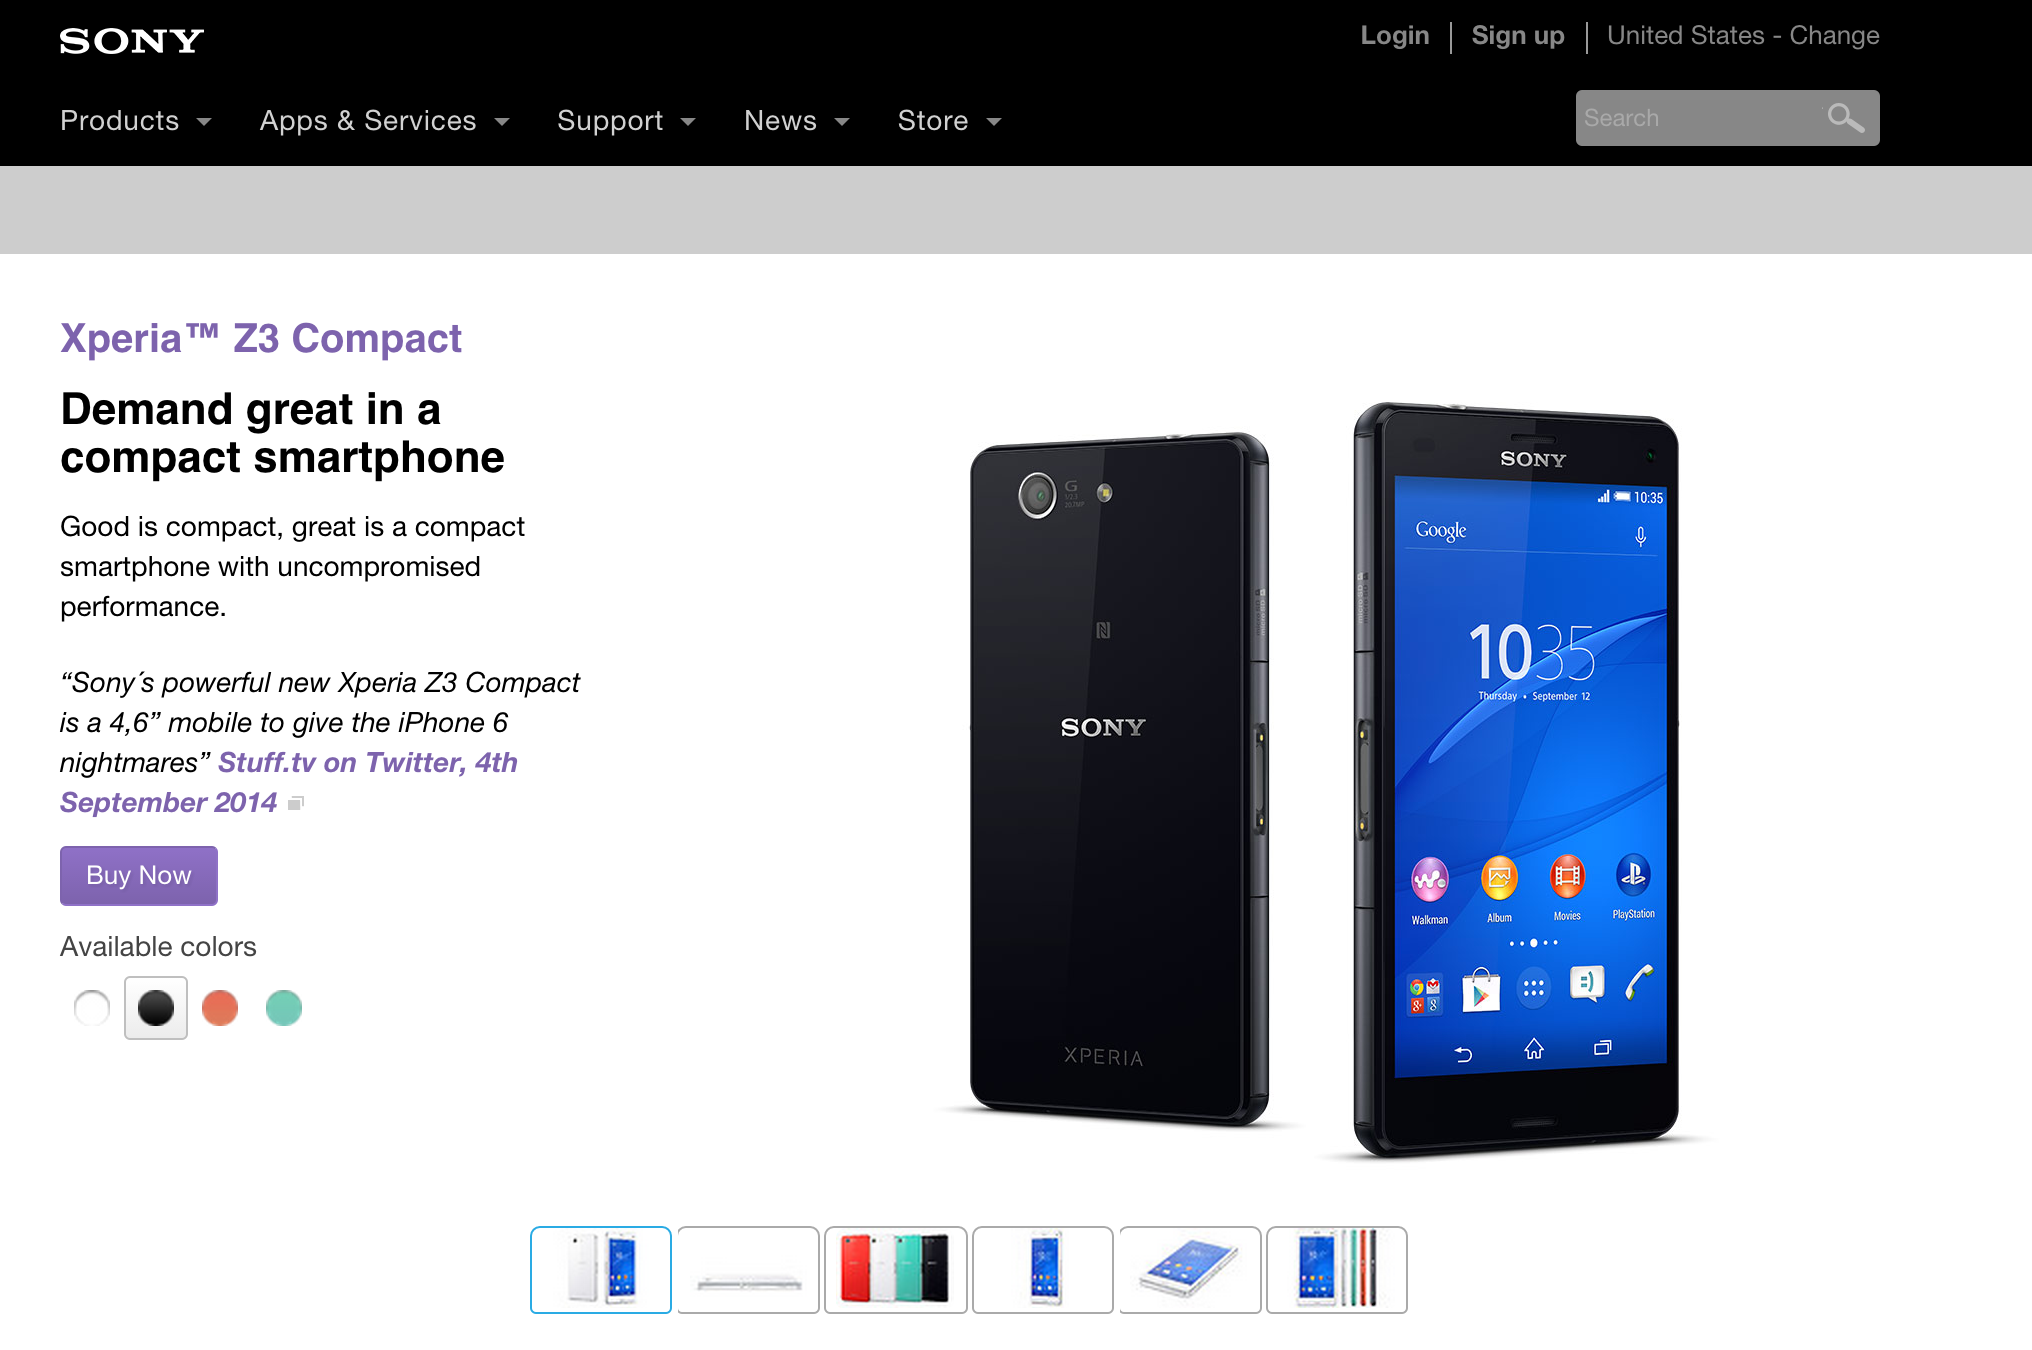 Sony Xperia Z3 Compact, The Information